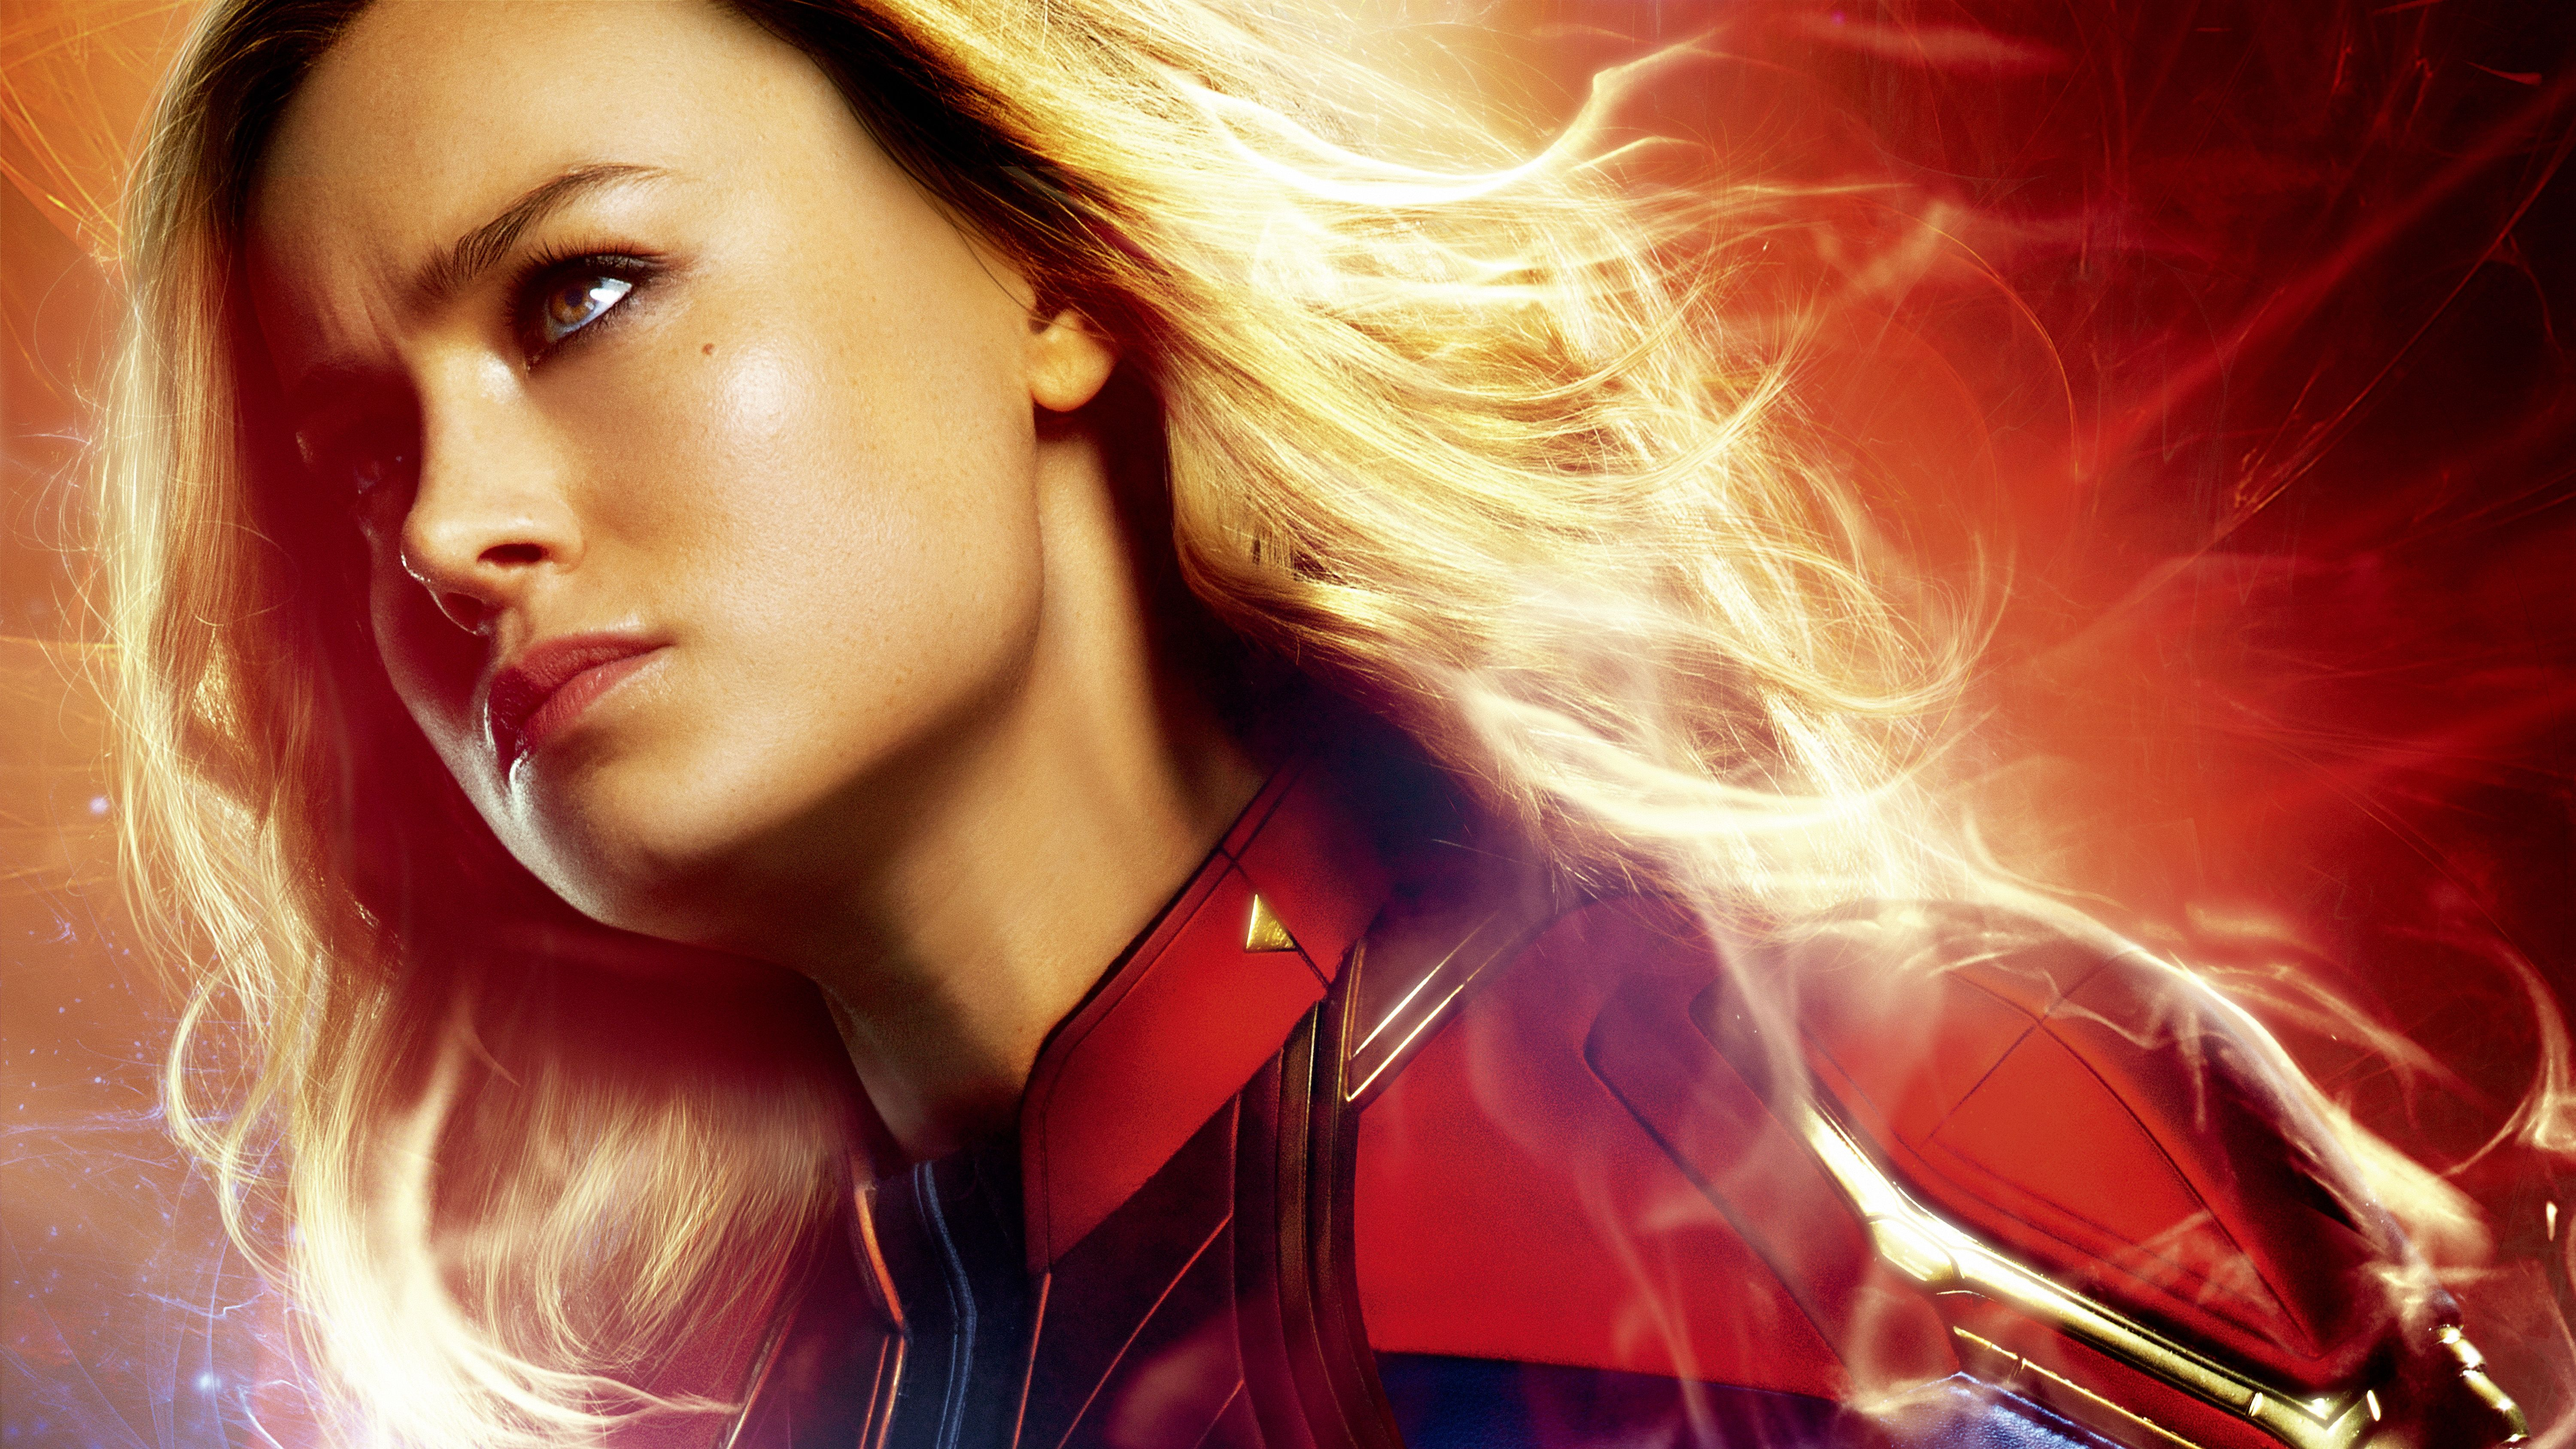 6000x3375 Wallpaper Captain Marvel, Brie Larson, 4K, 5K, 2019, Movies ...